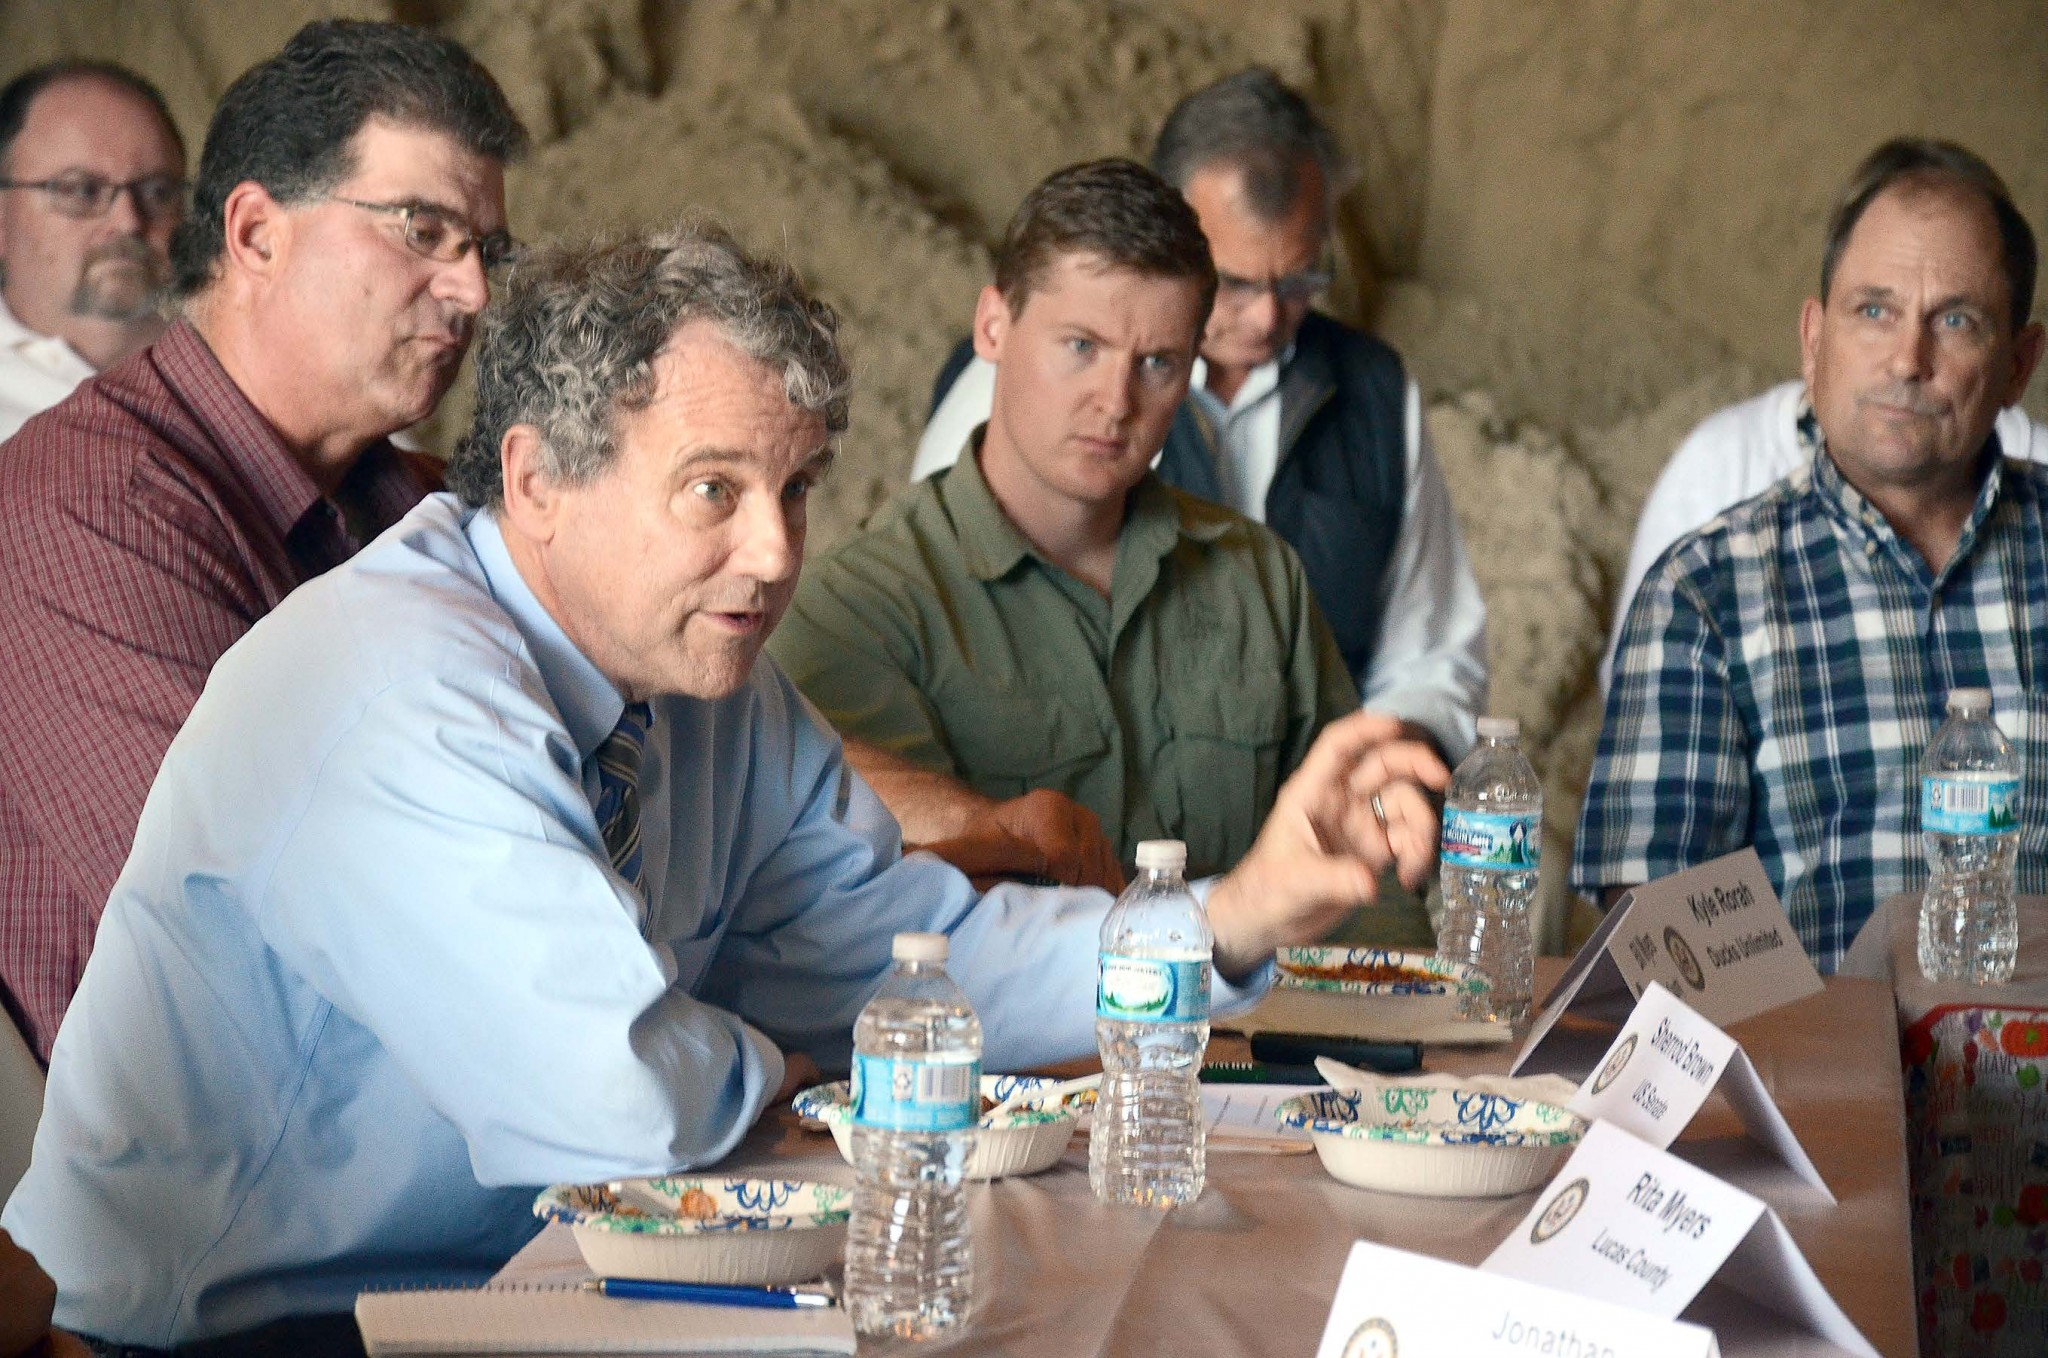 In October 2017, U.S. Senator Sherrod Brown (D-OH) spoke at the Farm Bill Roundtable held at Myers Farms, Oregon. Directly behind him are Bill Myers, left, and Kyle Rorah, Ducks Unlimited. (Press file photo by Ken Grosjean)